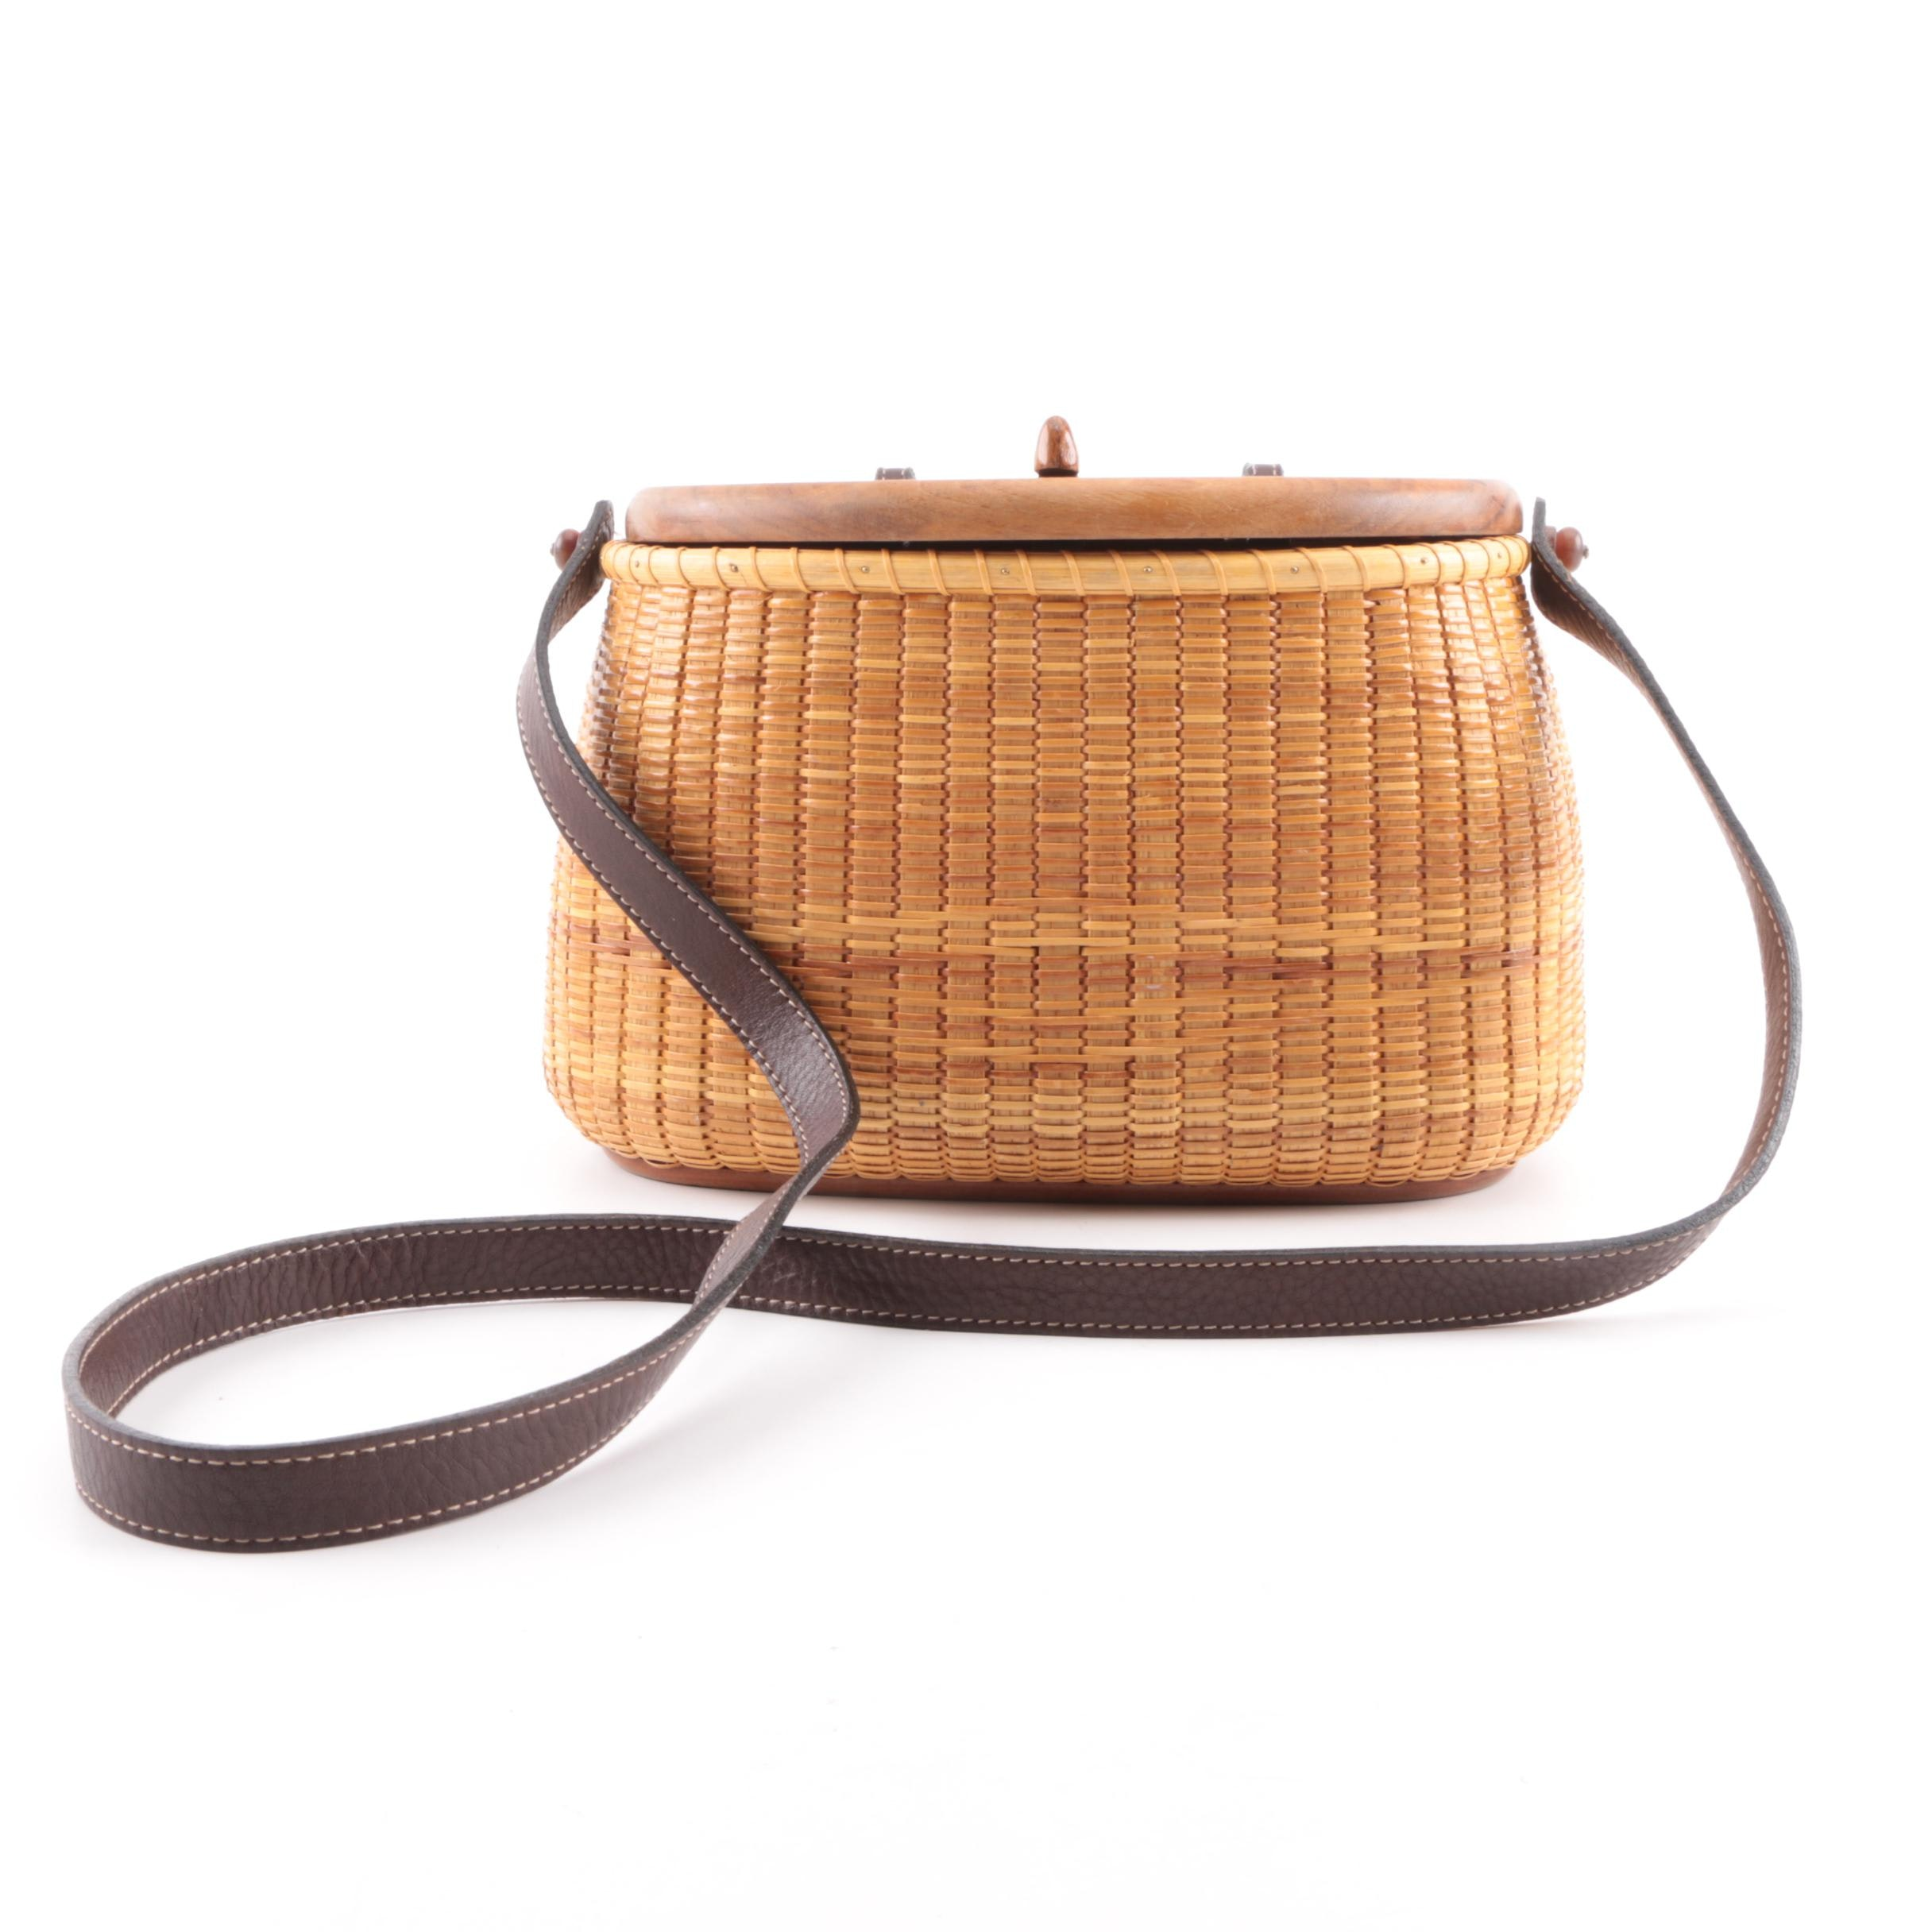 Woven Rattan Basket Bag with Wooden Lid and Leather Strap